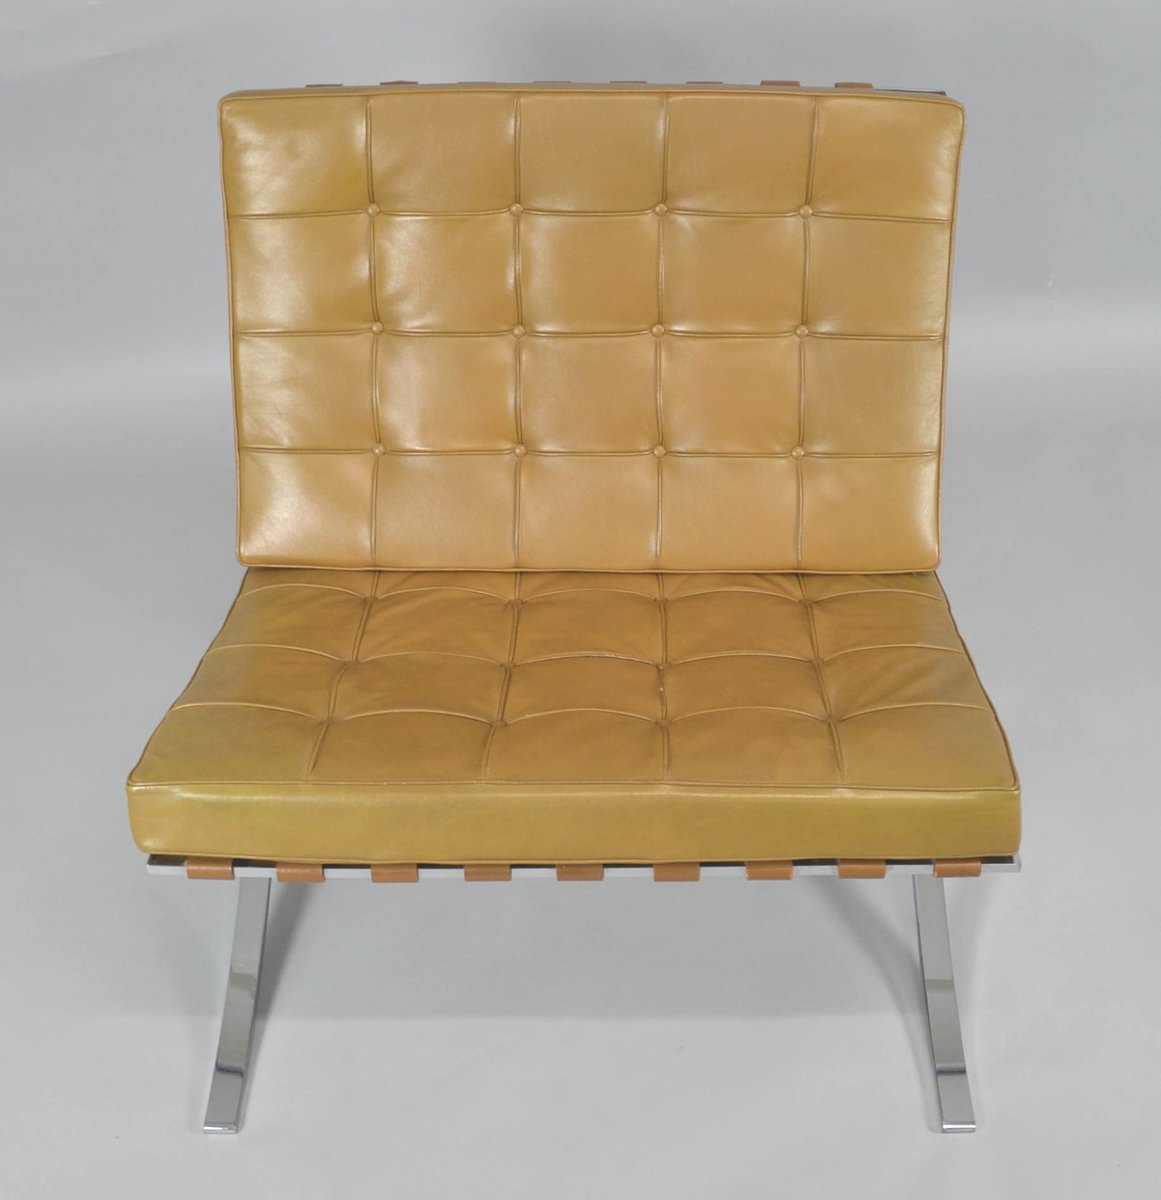 Charmant Vintage Barcelona Chair With Ottoman By Ludwig Mies Van Der Rohe For Knoll  International